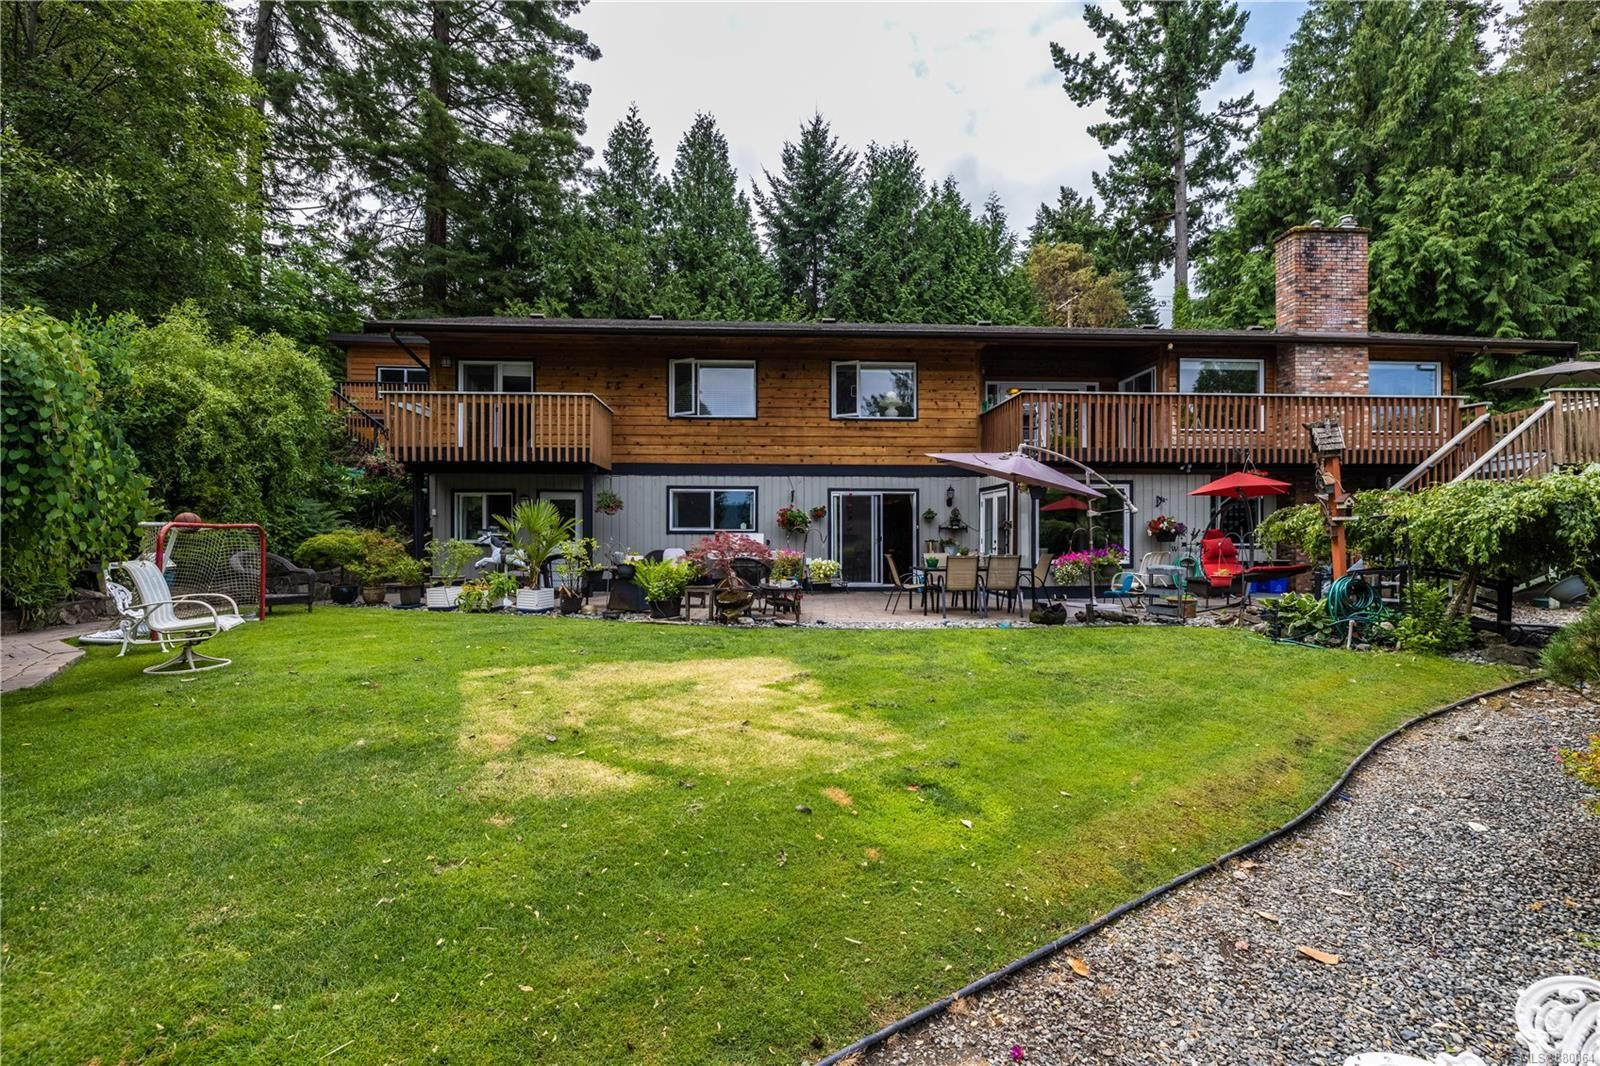 Main Photo: 1290 Lands End Rd in : NS Lands End House for sale (North Saanich)  : MLS®# 880064